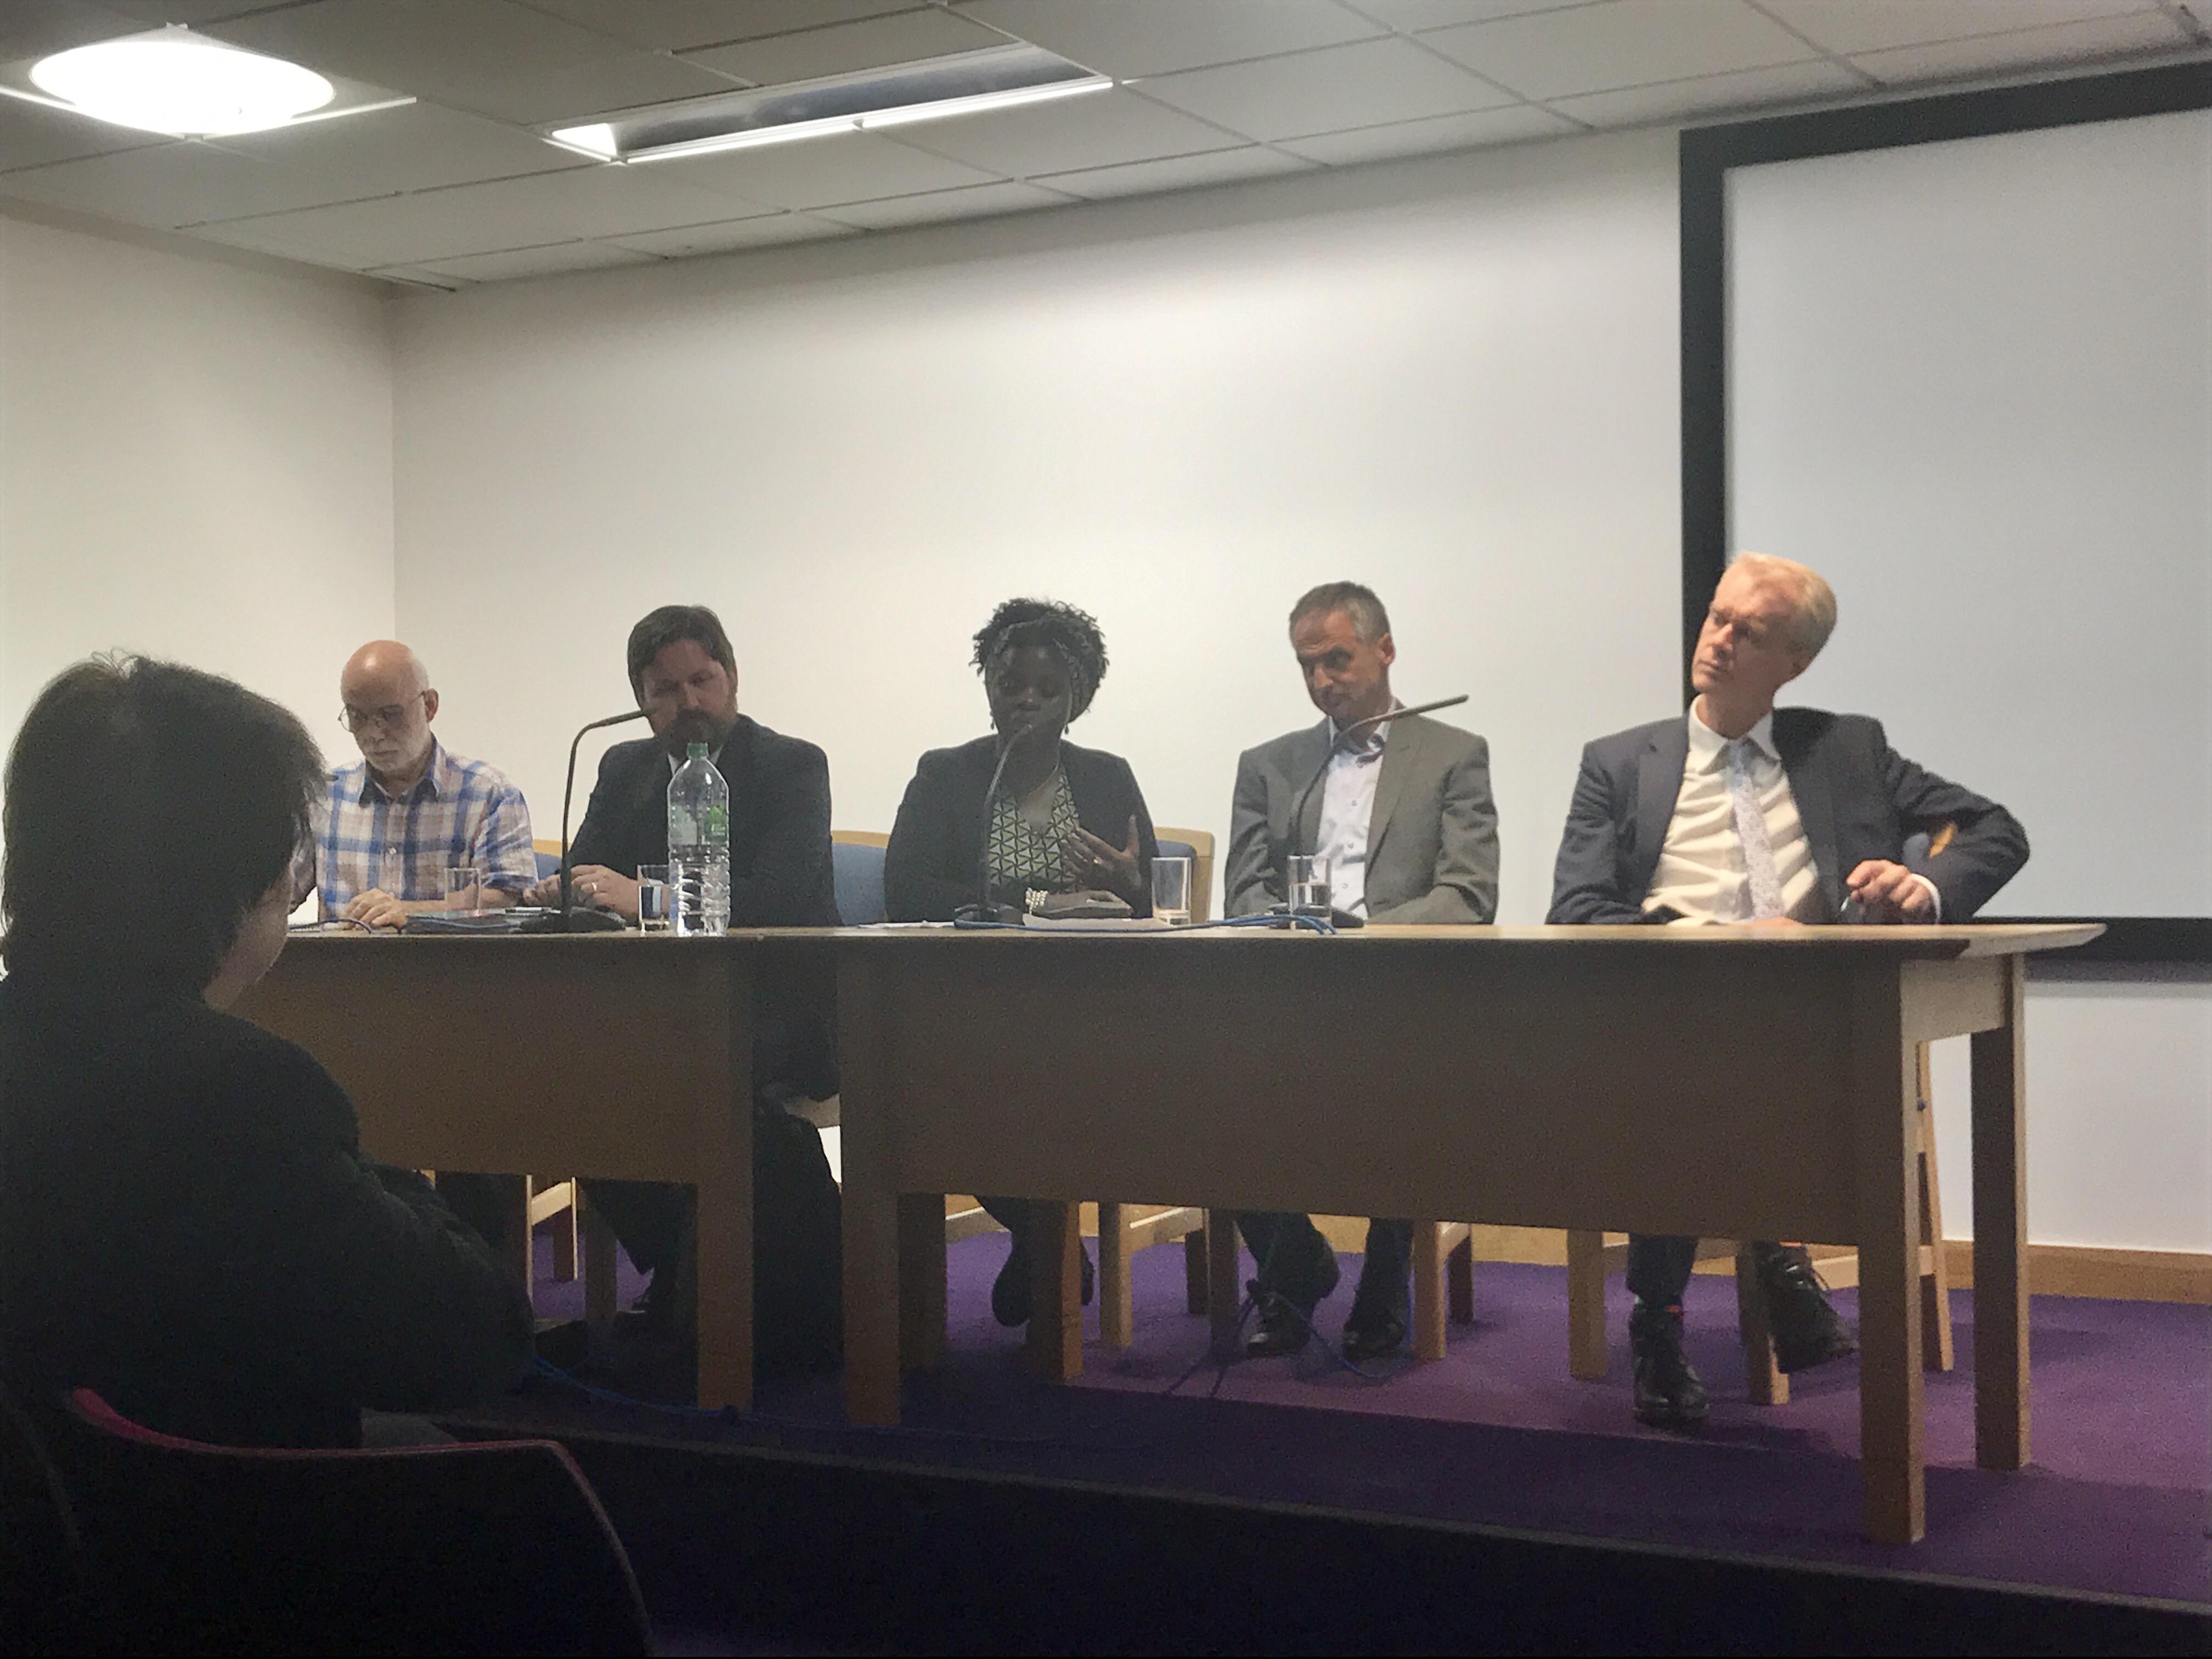 panel discussants at Refugee Week event (4 white males and one African female)